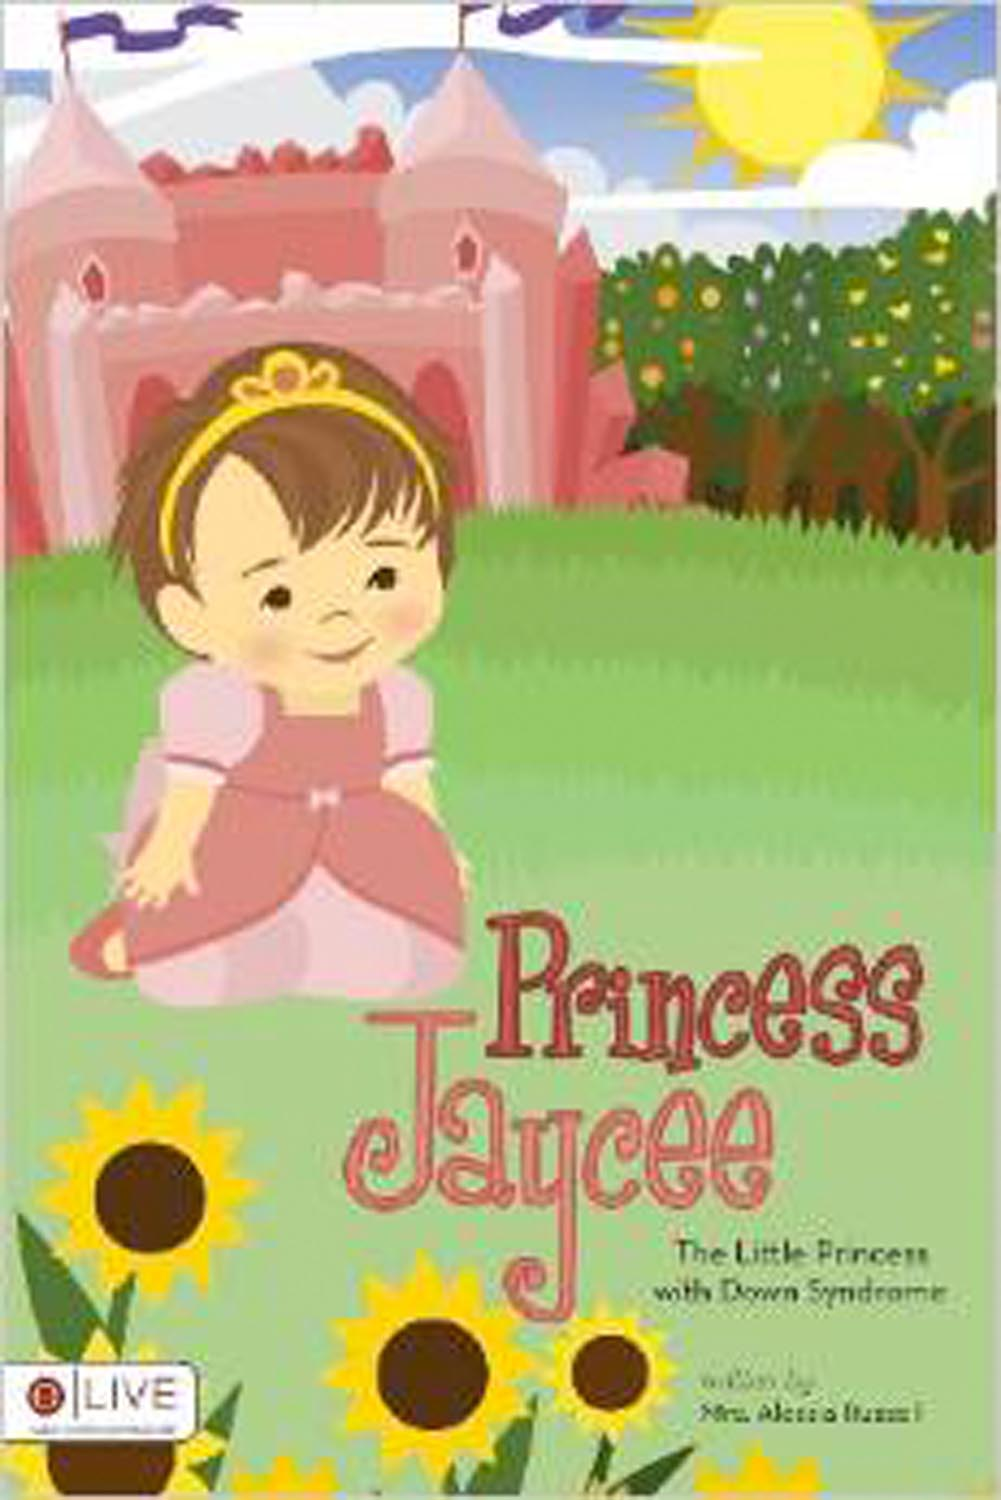 Princess Jaycee – The Little Princess with Down Syndrome